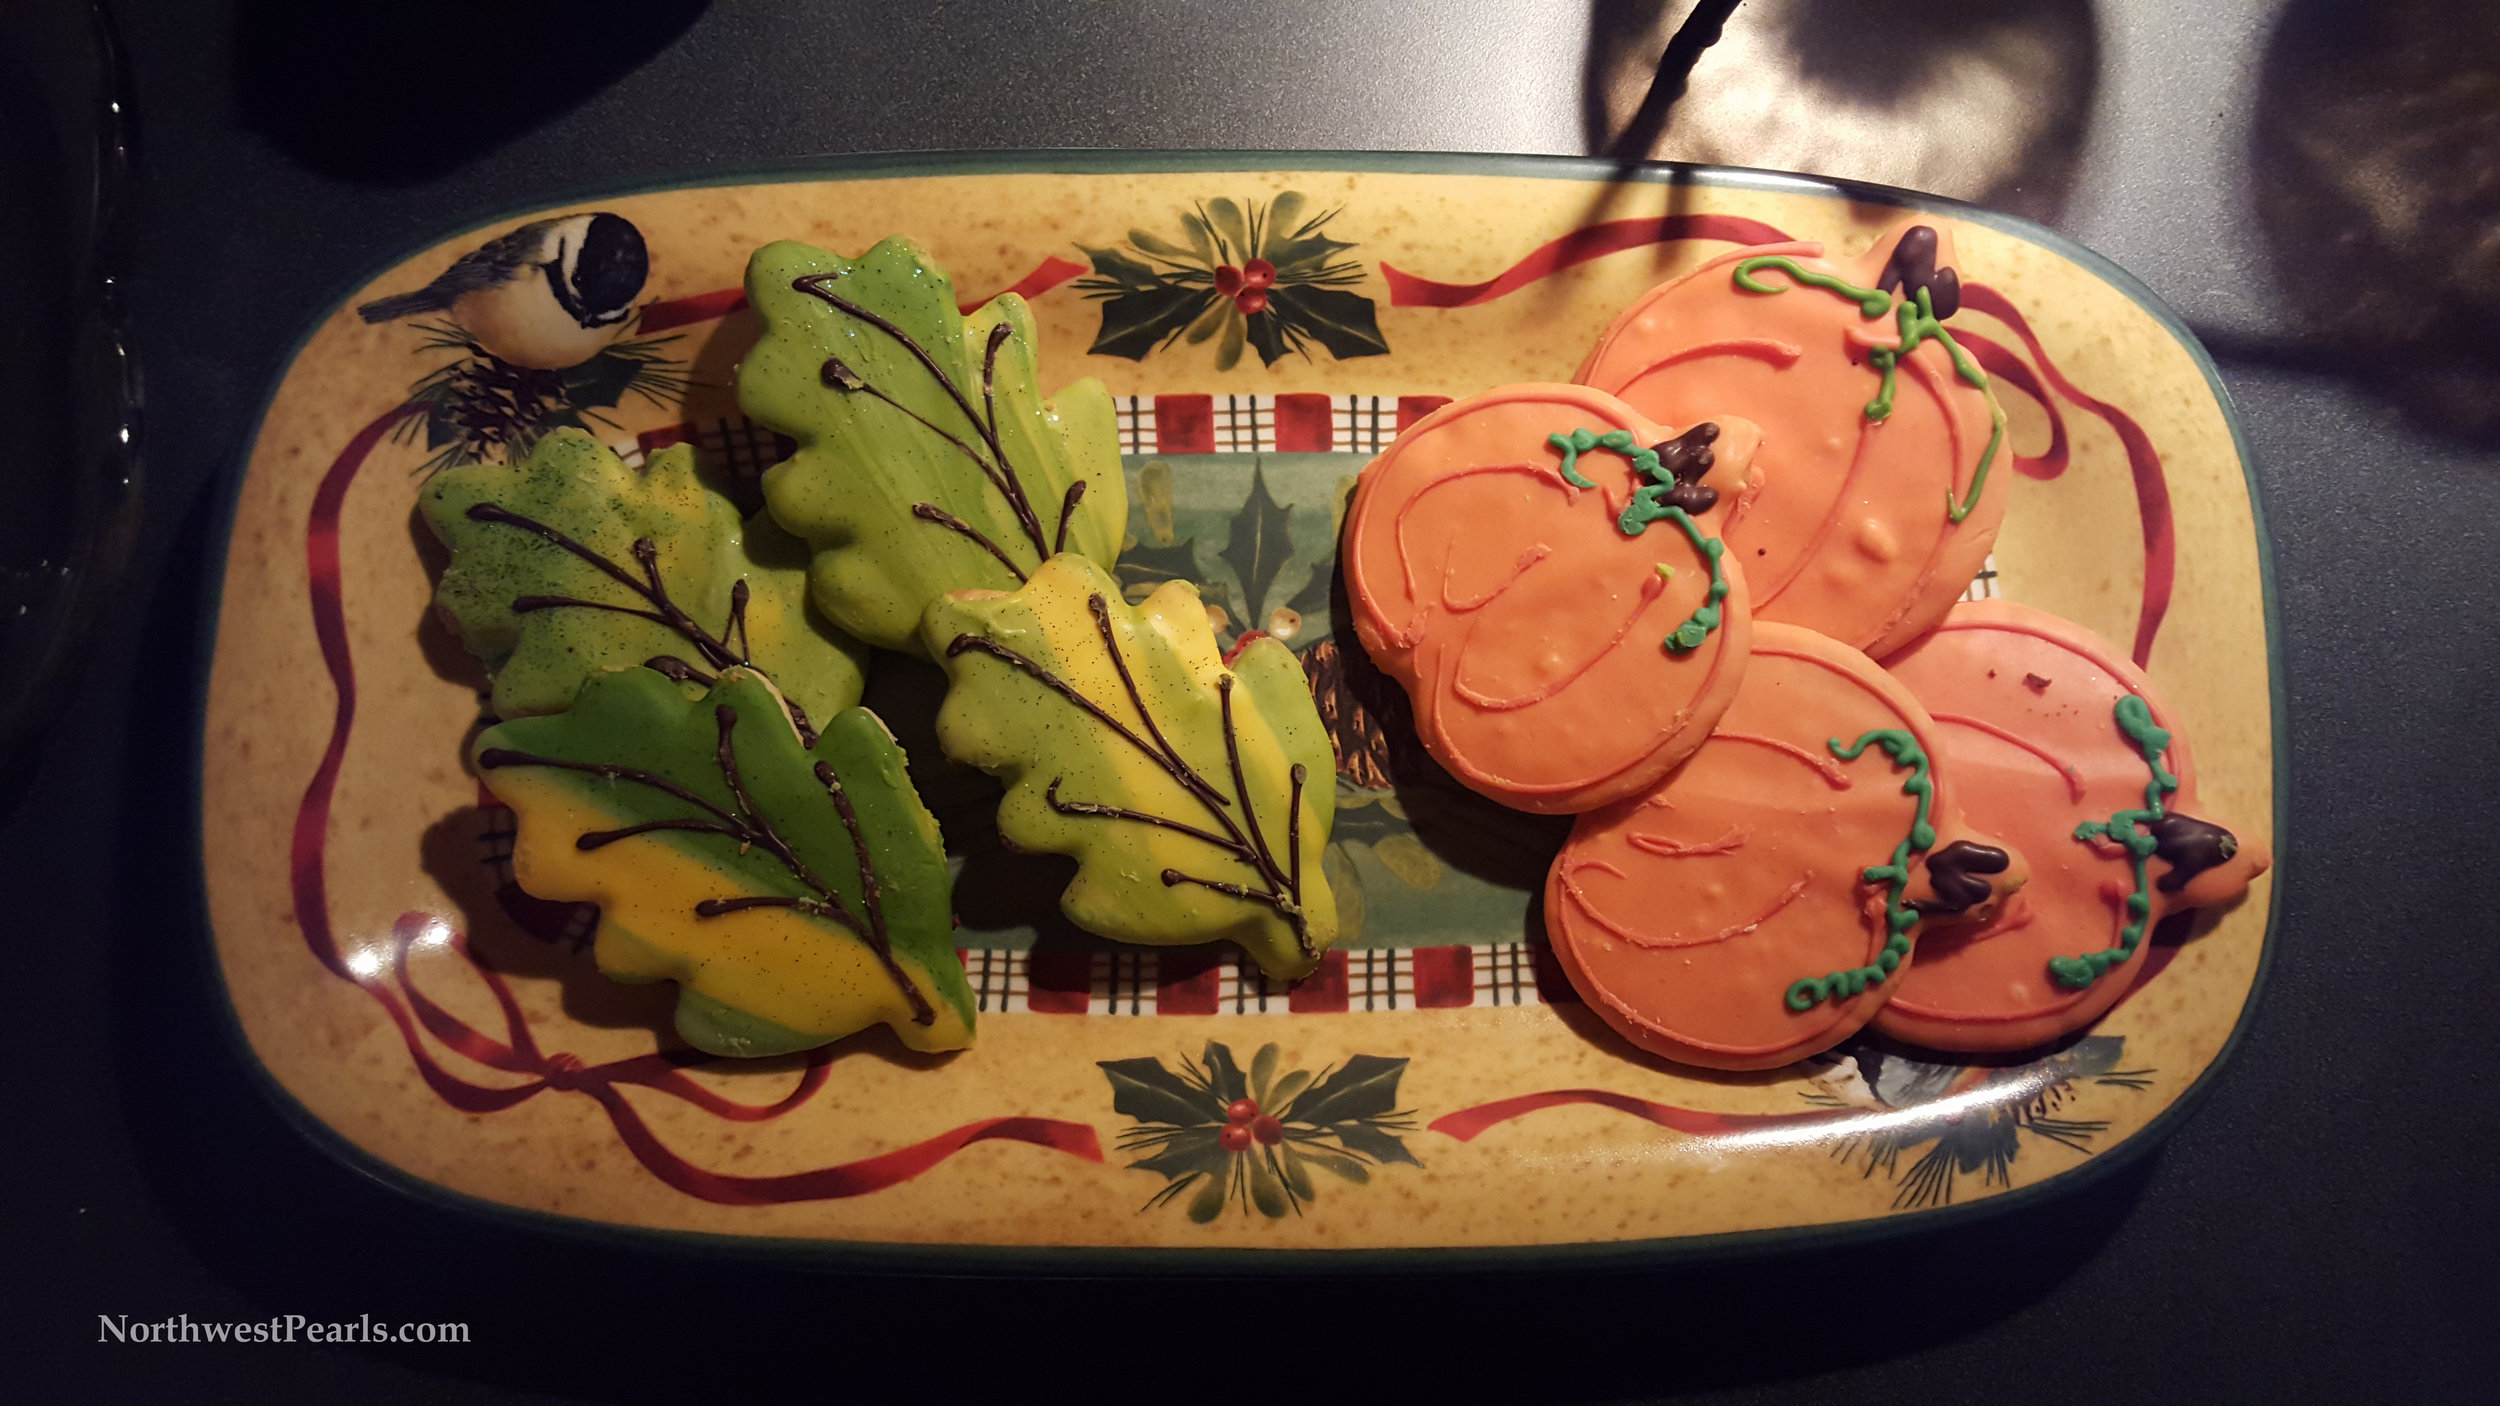 Northwest Pearls: Thanksgiving Bakery Treats